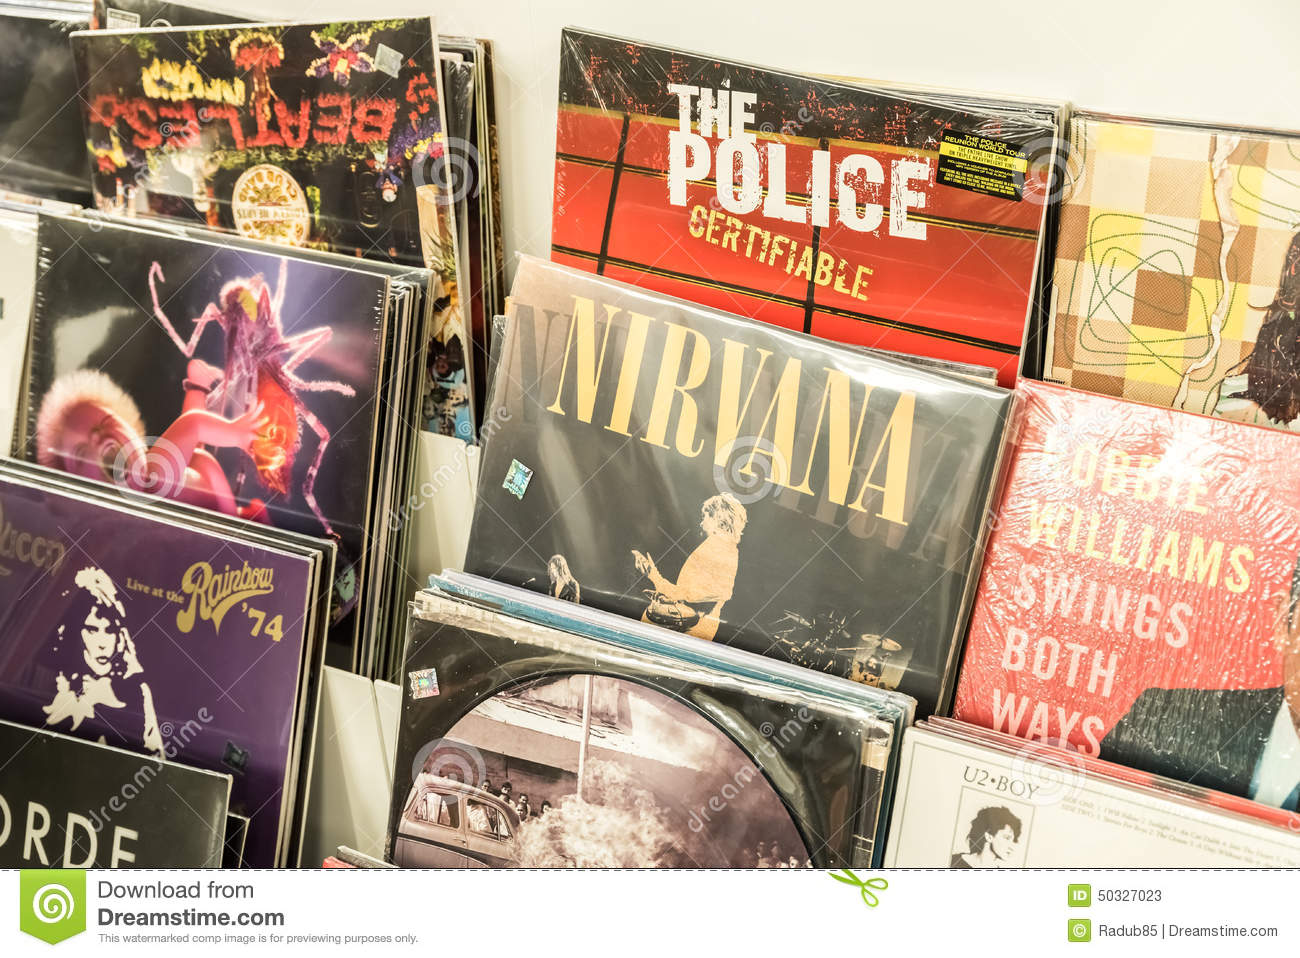 7 774 vinyl record collection stock photos, vectors, and illustrations are available royalty-free.